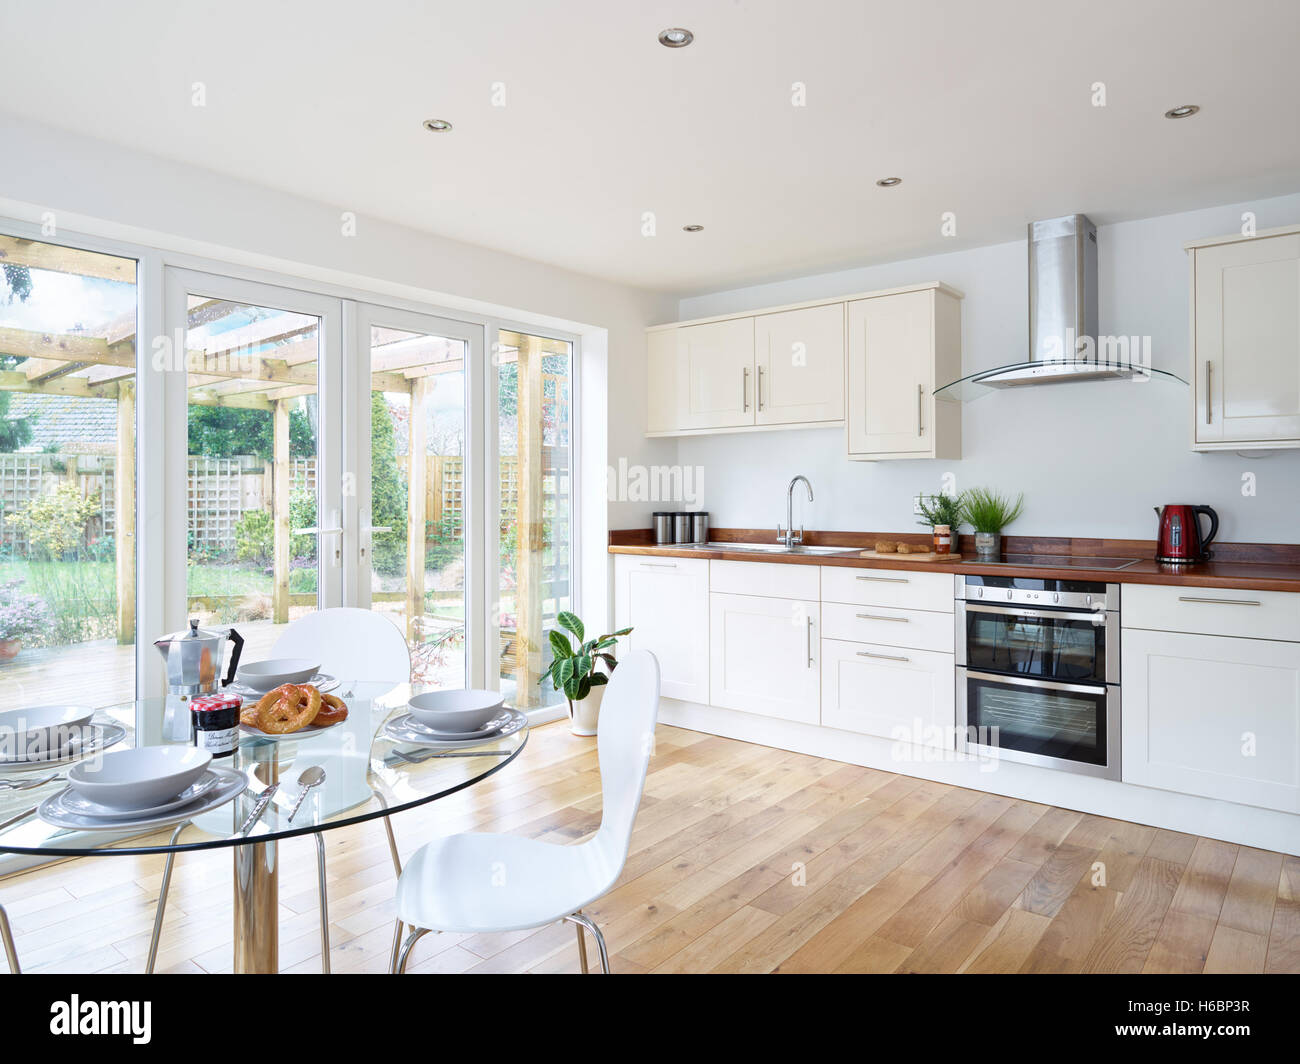 white kitchen granite worktops stockfotos white kitchen granite worktops bilder alamy. Black Bedroom Furniture Sets. Home Design Ideas